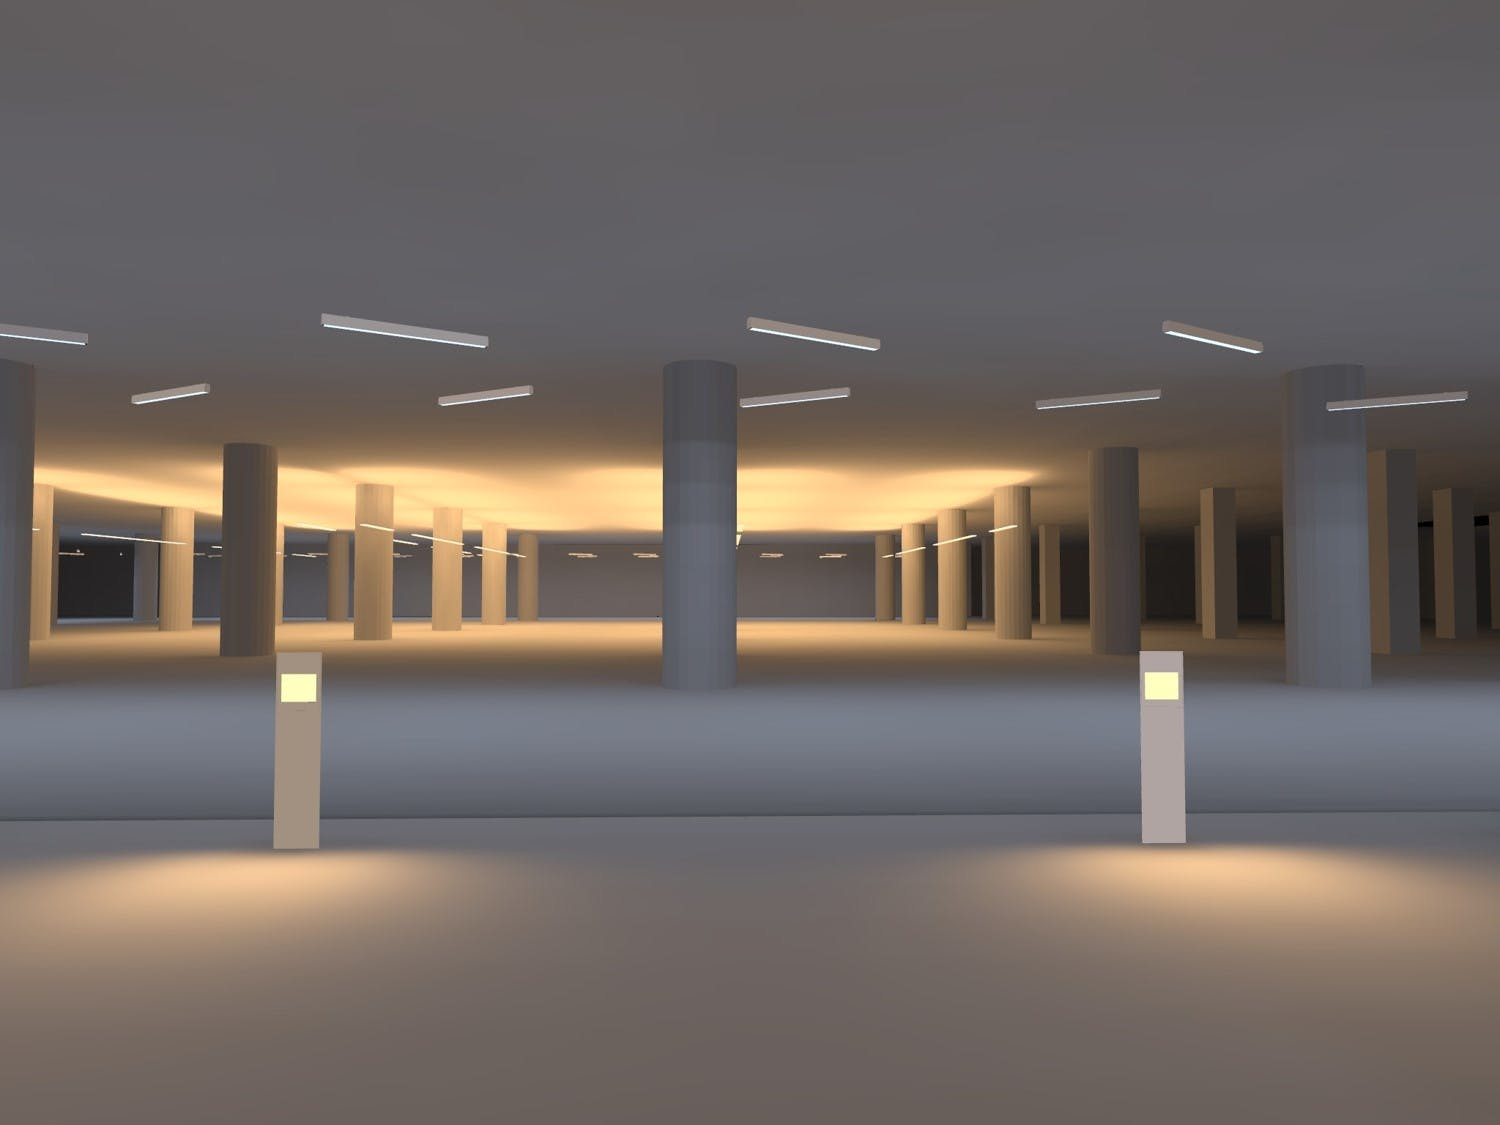 basement lighting design. beautiful basement lighting design for leed campus  basement parking to